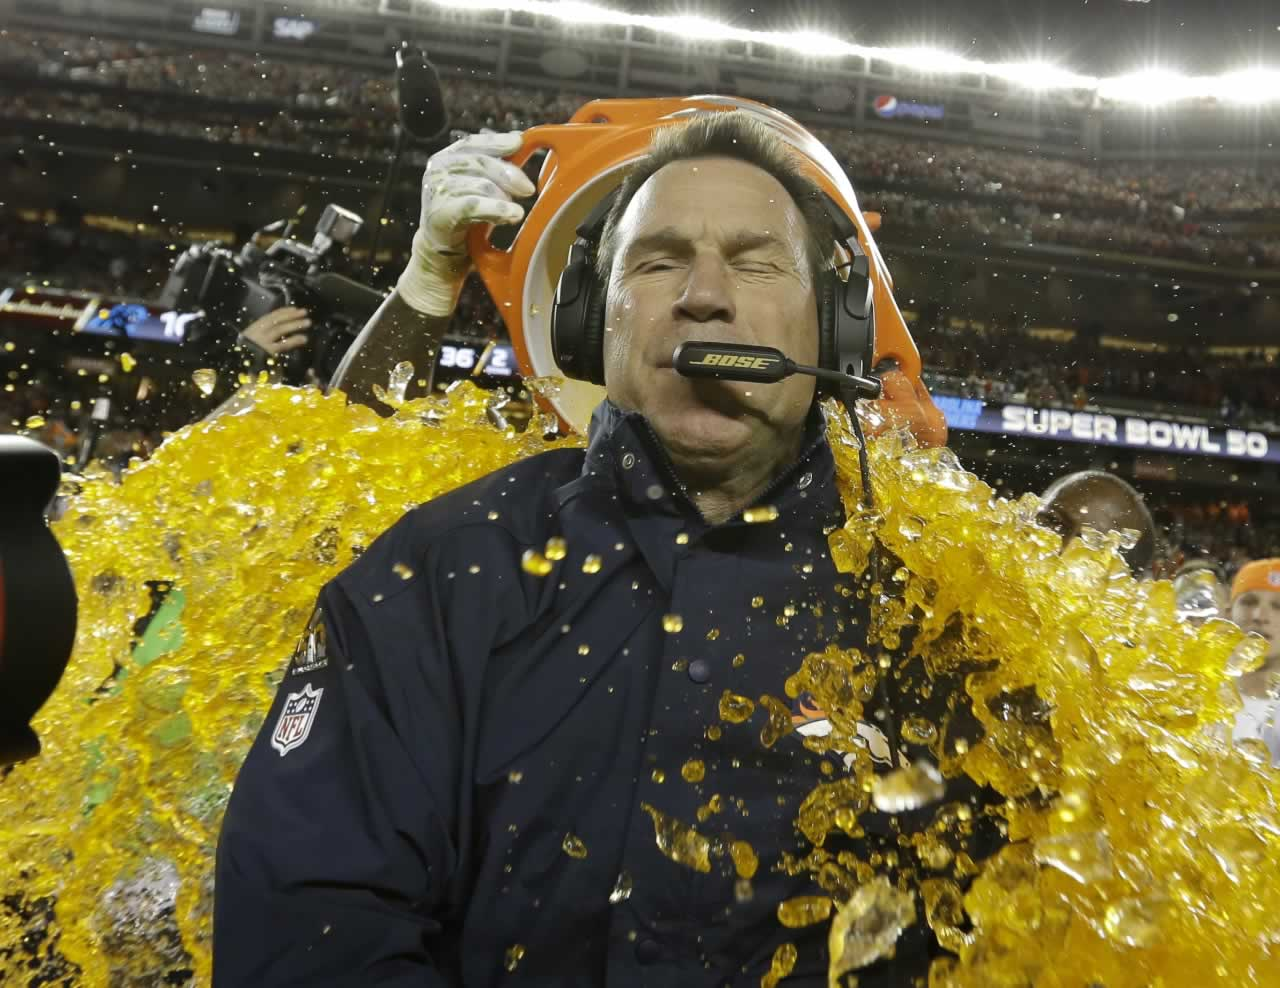 "<div class=""meta image-caption""><div class=""origin-logo origin-image none""><span>none</span></div><span class=""caption-text"">Denver Broncos' head coach Gary Kubiak is doused with Gatorade during the second half of the NFL Super Bowl 50 football game Sunday, Feb. 7, 2016, in Santa Clara, Calif. (AP Photo/David J. Phillip)</span></div>"